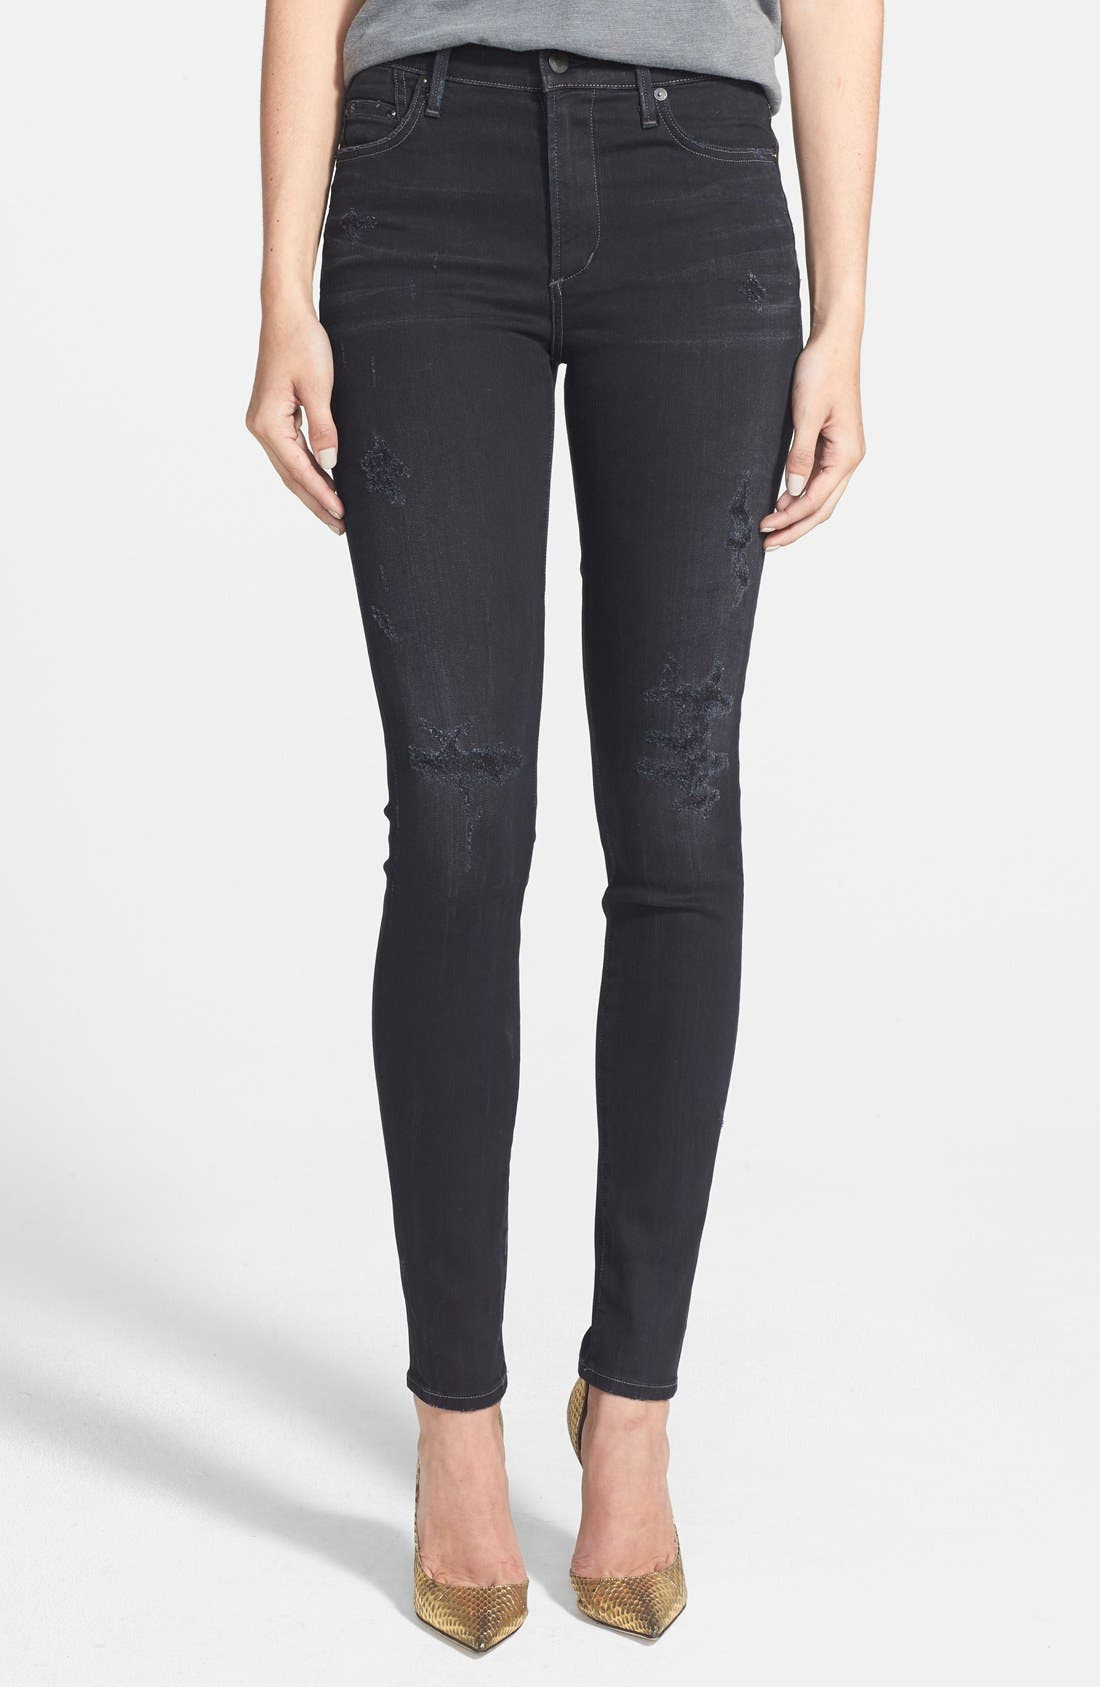 CITIZENS OF HUMANITY Rocket Distressed High Waist Skinny